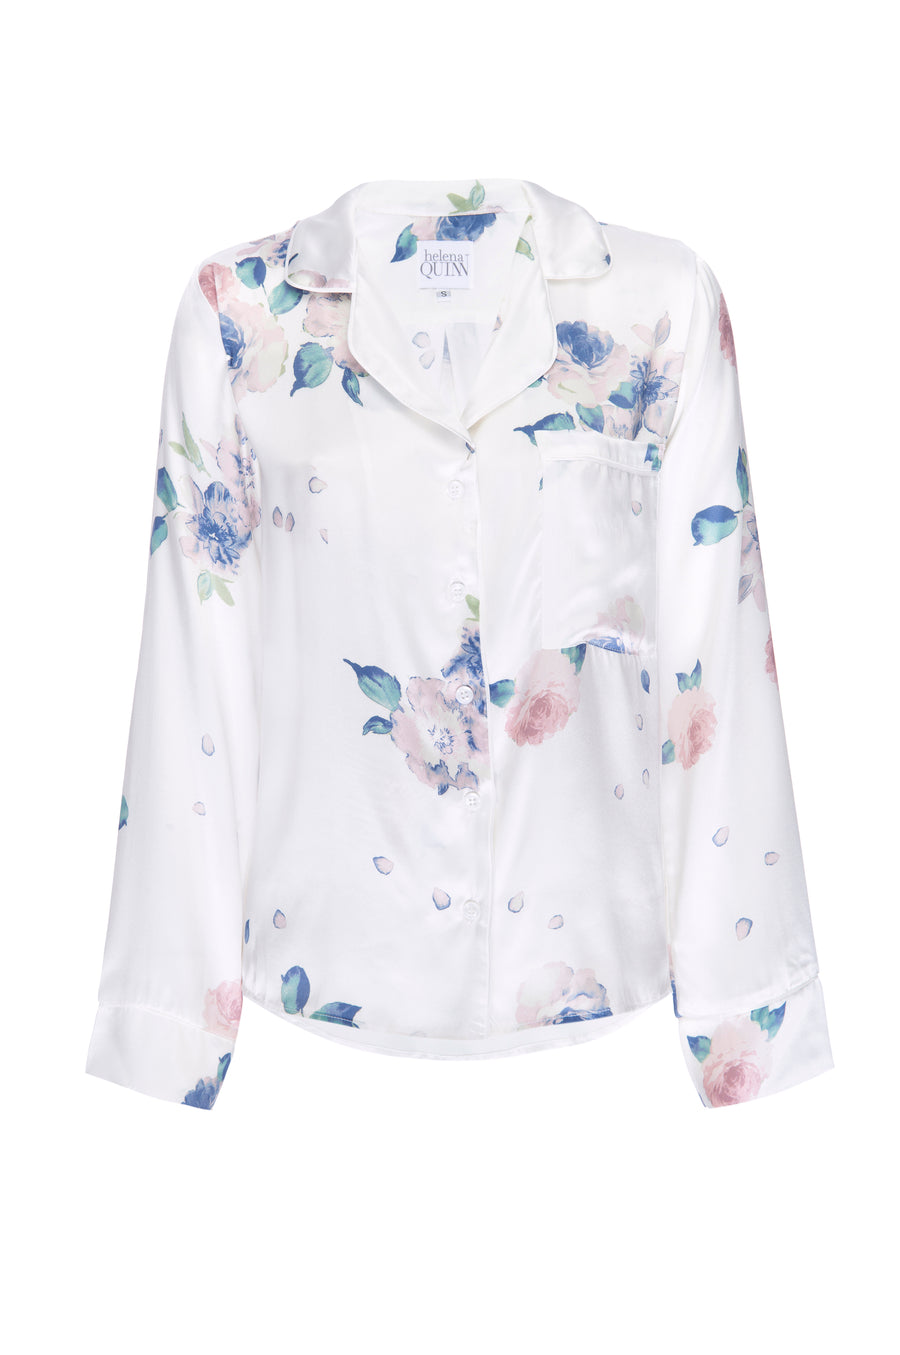 Silk Charmeuse Long Sleeved PJ Top: Ivory Floral Print